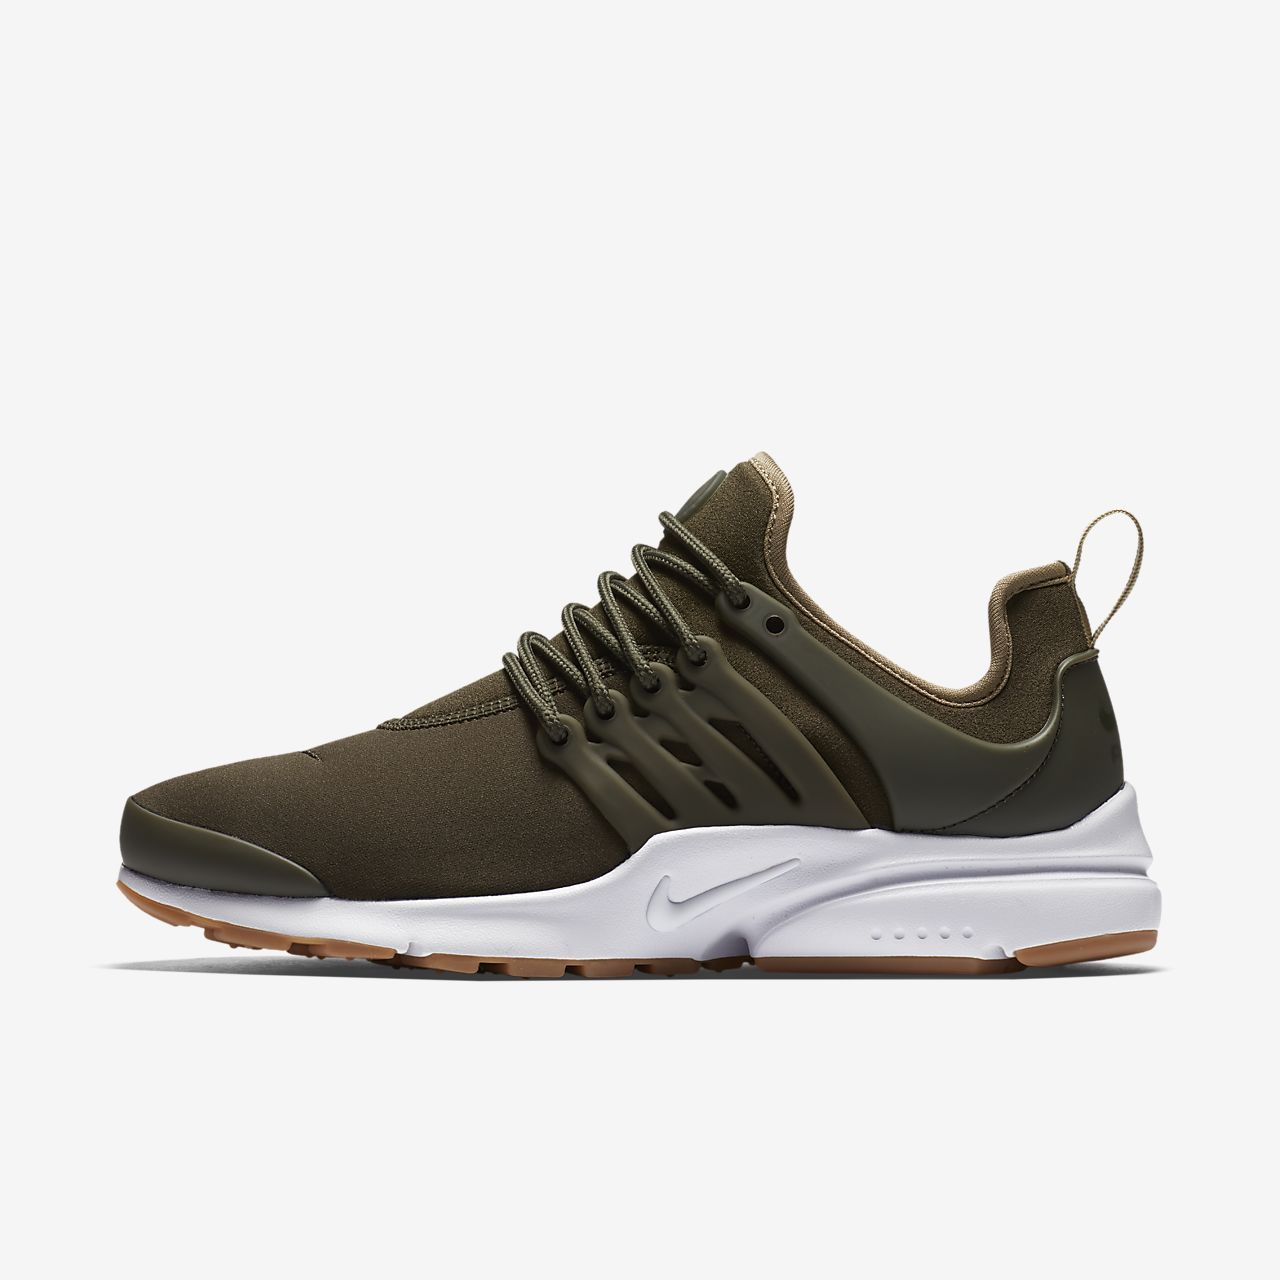 timeless design fd6d6 2df0b order nike air presto womens shoe 5b67c b6e26